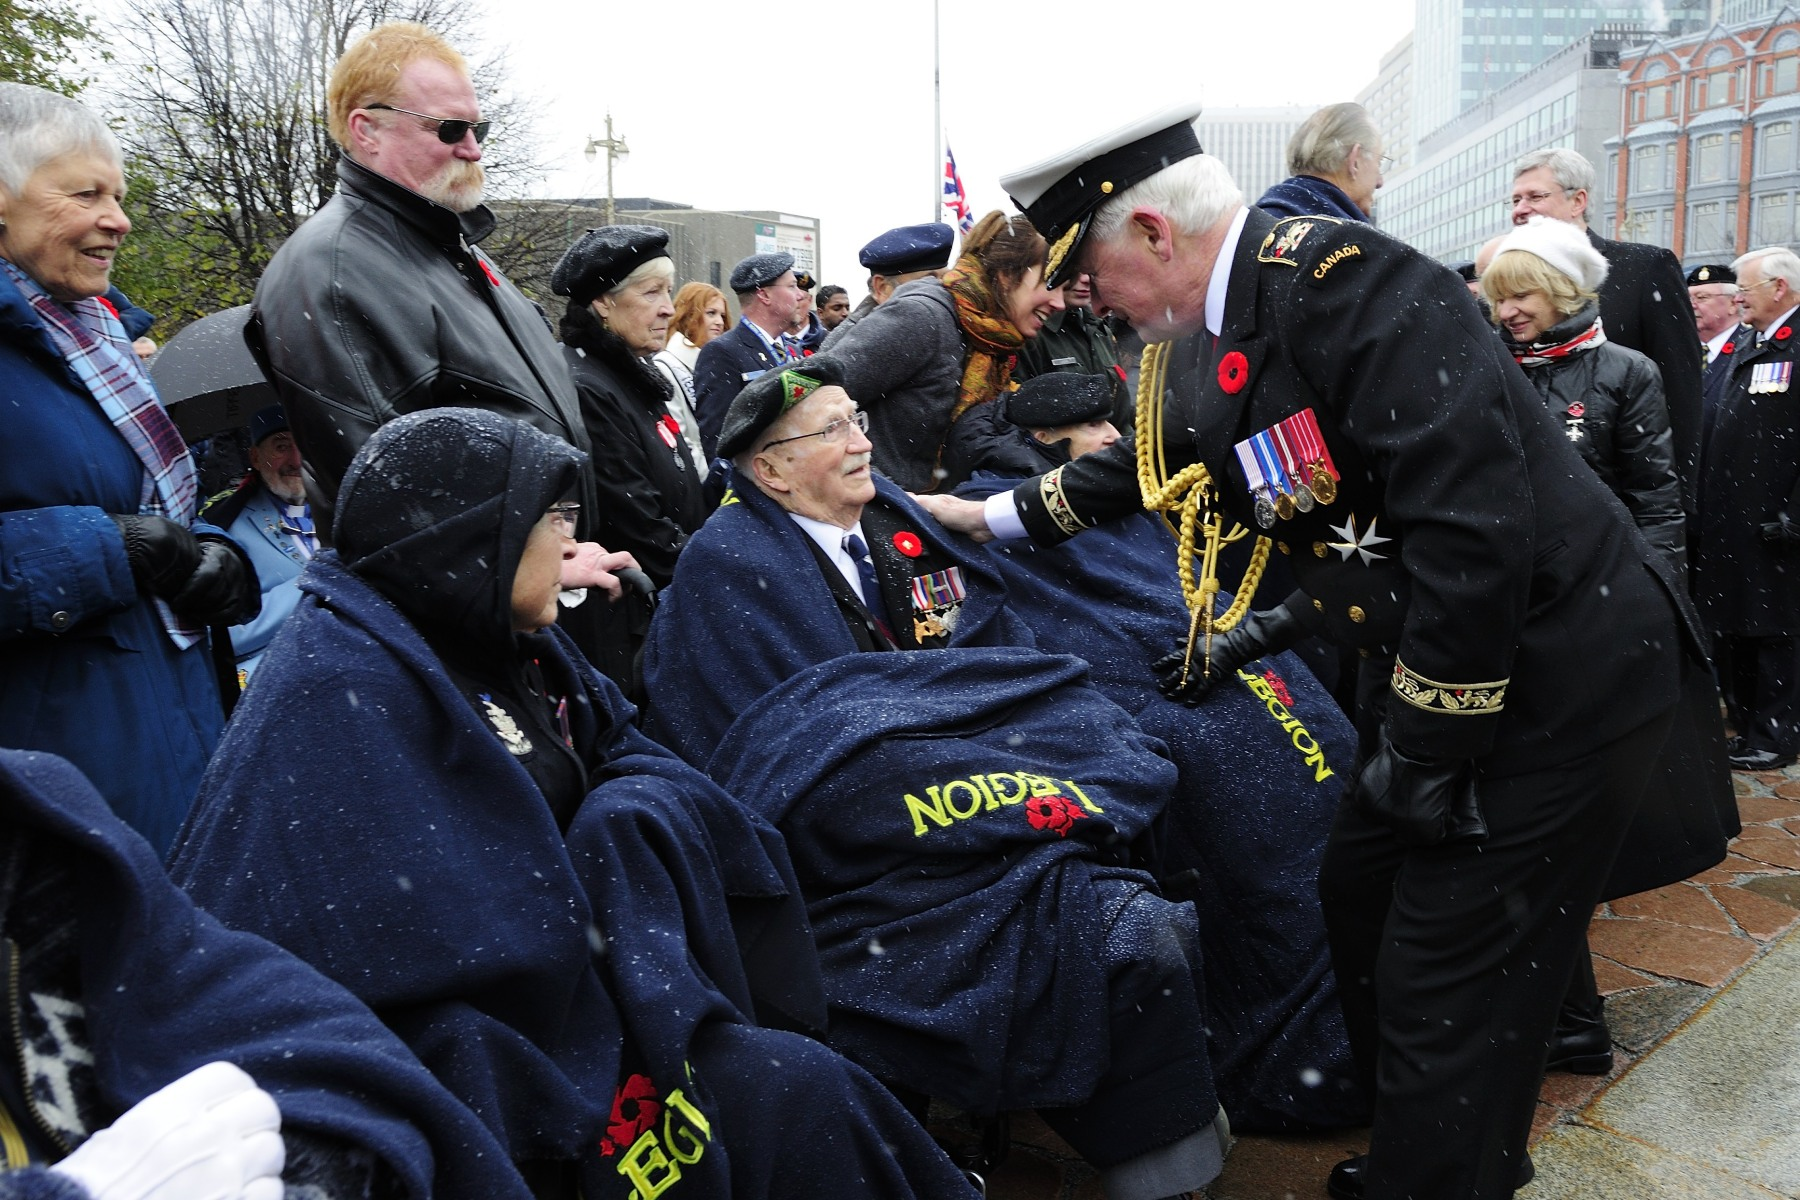 The Governor General had the opportunity to speak with some of the veterans attending the ceremony.